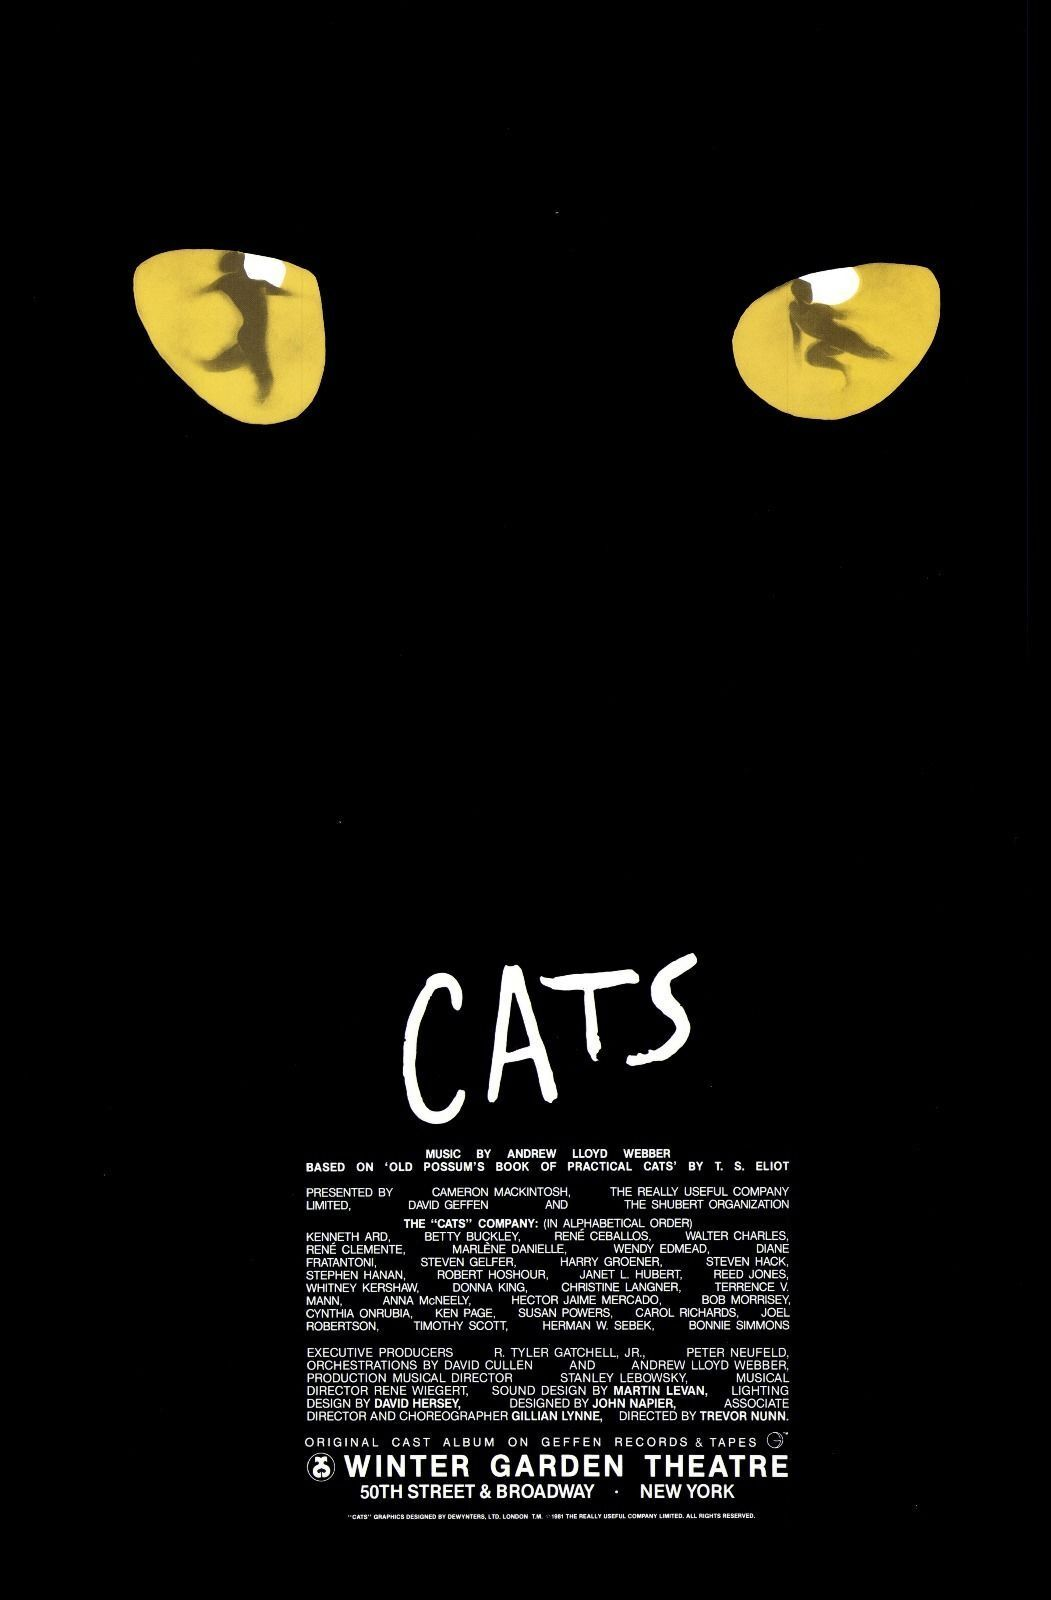 Poster design top 10 - In This 1983 Tony Award Winner For Best Musical The Jellicle Cats Compete With One Another To Win Old Deuteronomy S Approval To Pass On To The Heaviside